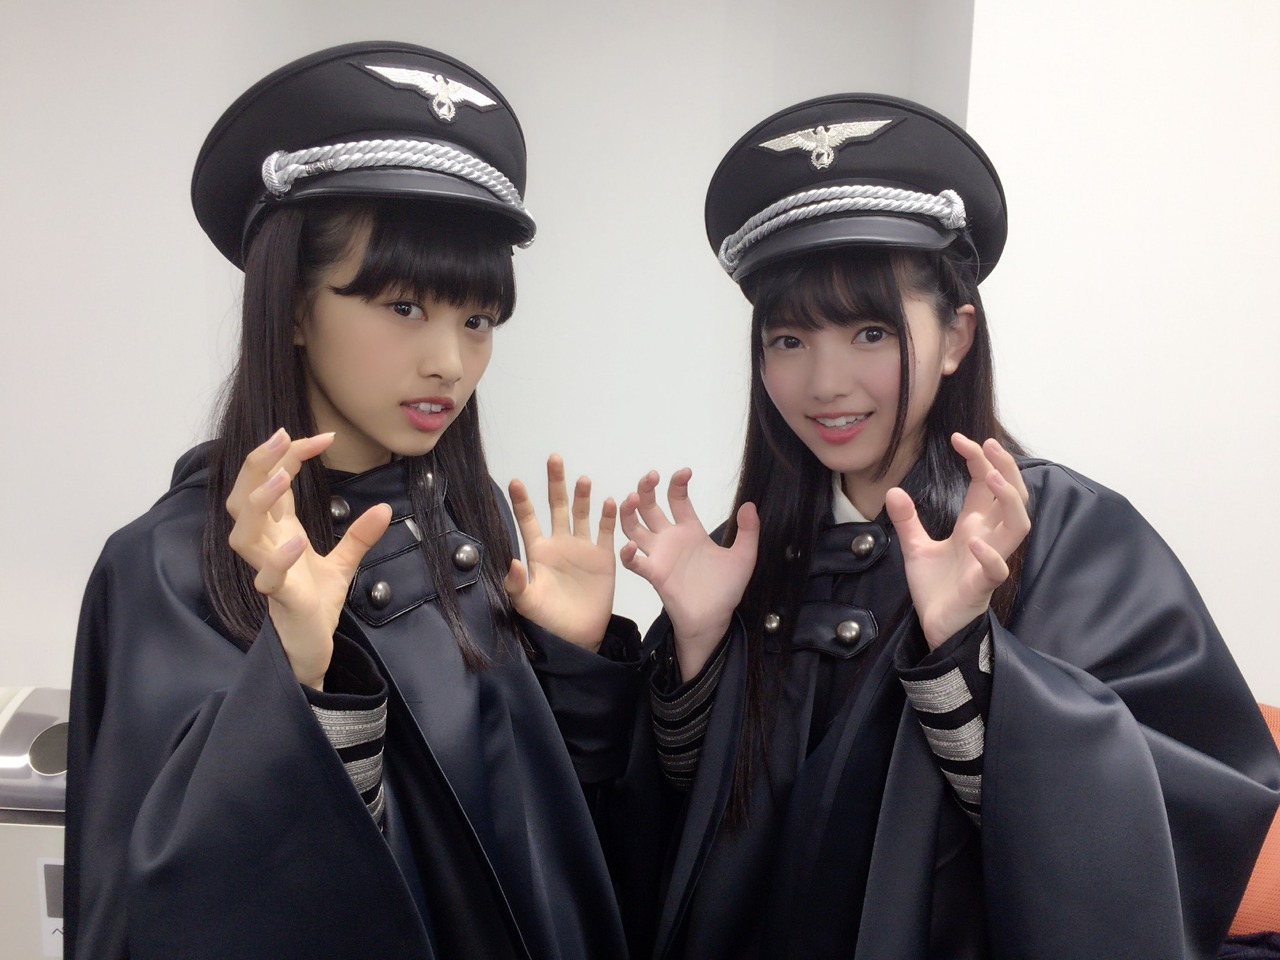 WTF: These Japanese pop stars appear to be wearing Nazi uniforms.